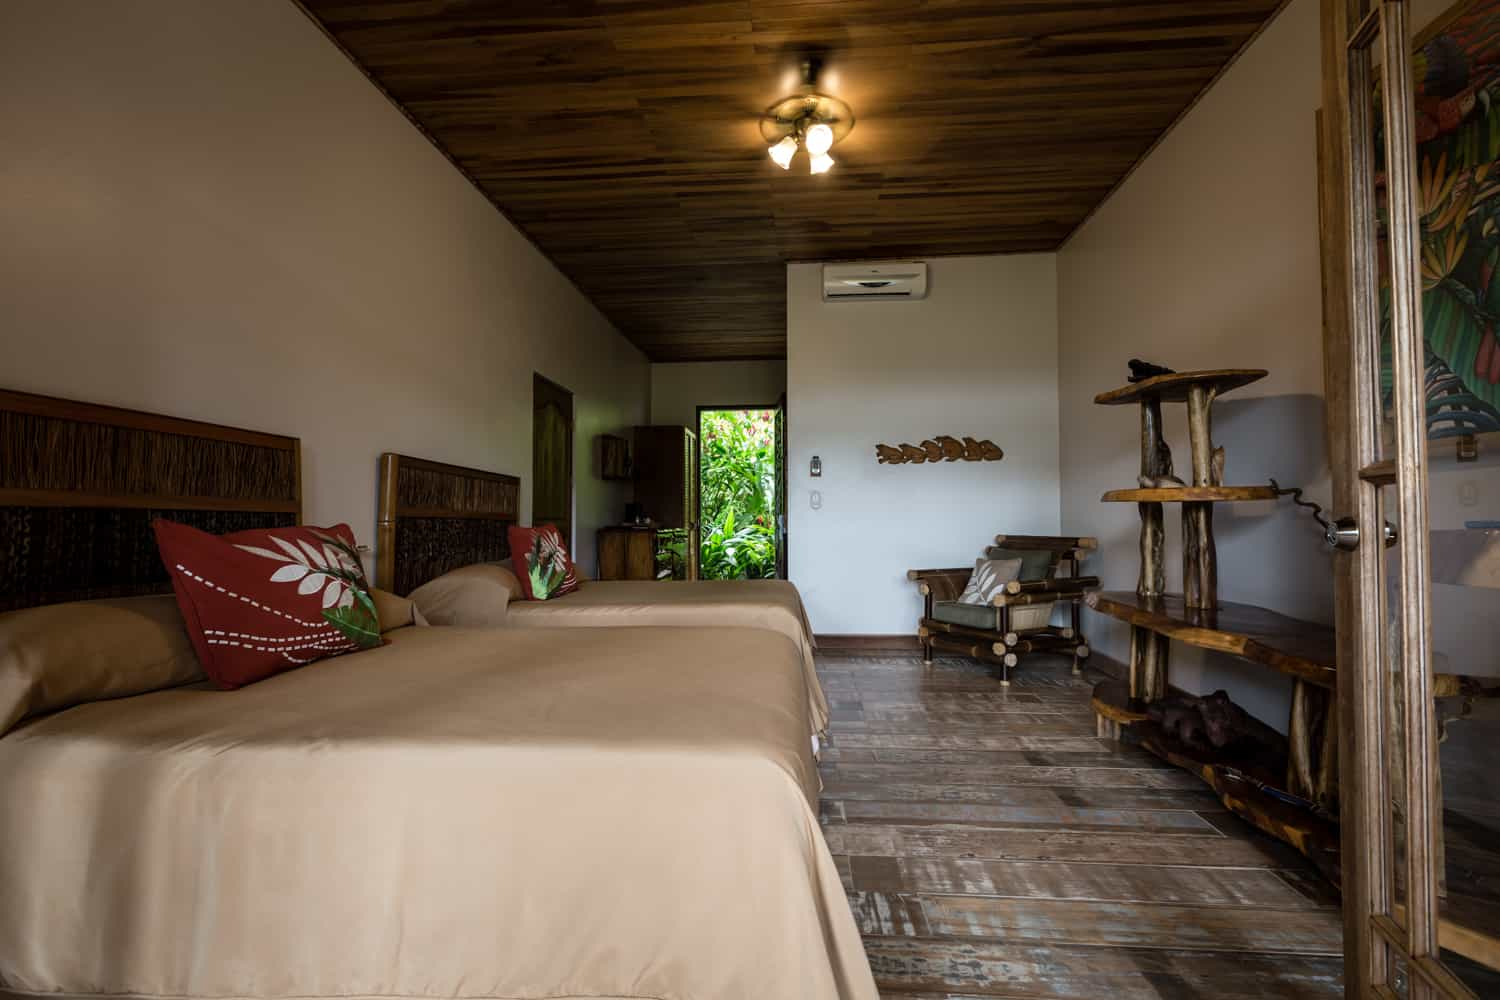 Standard accommodations at Lost Iguana Resort for wedding guests.